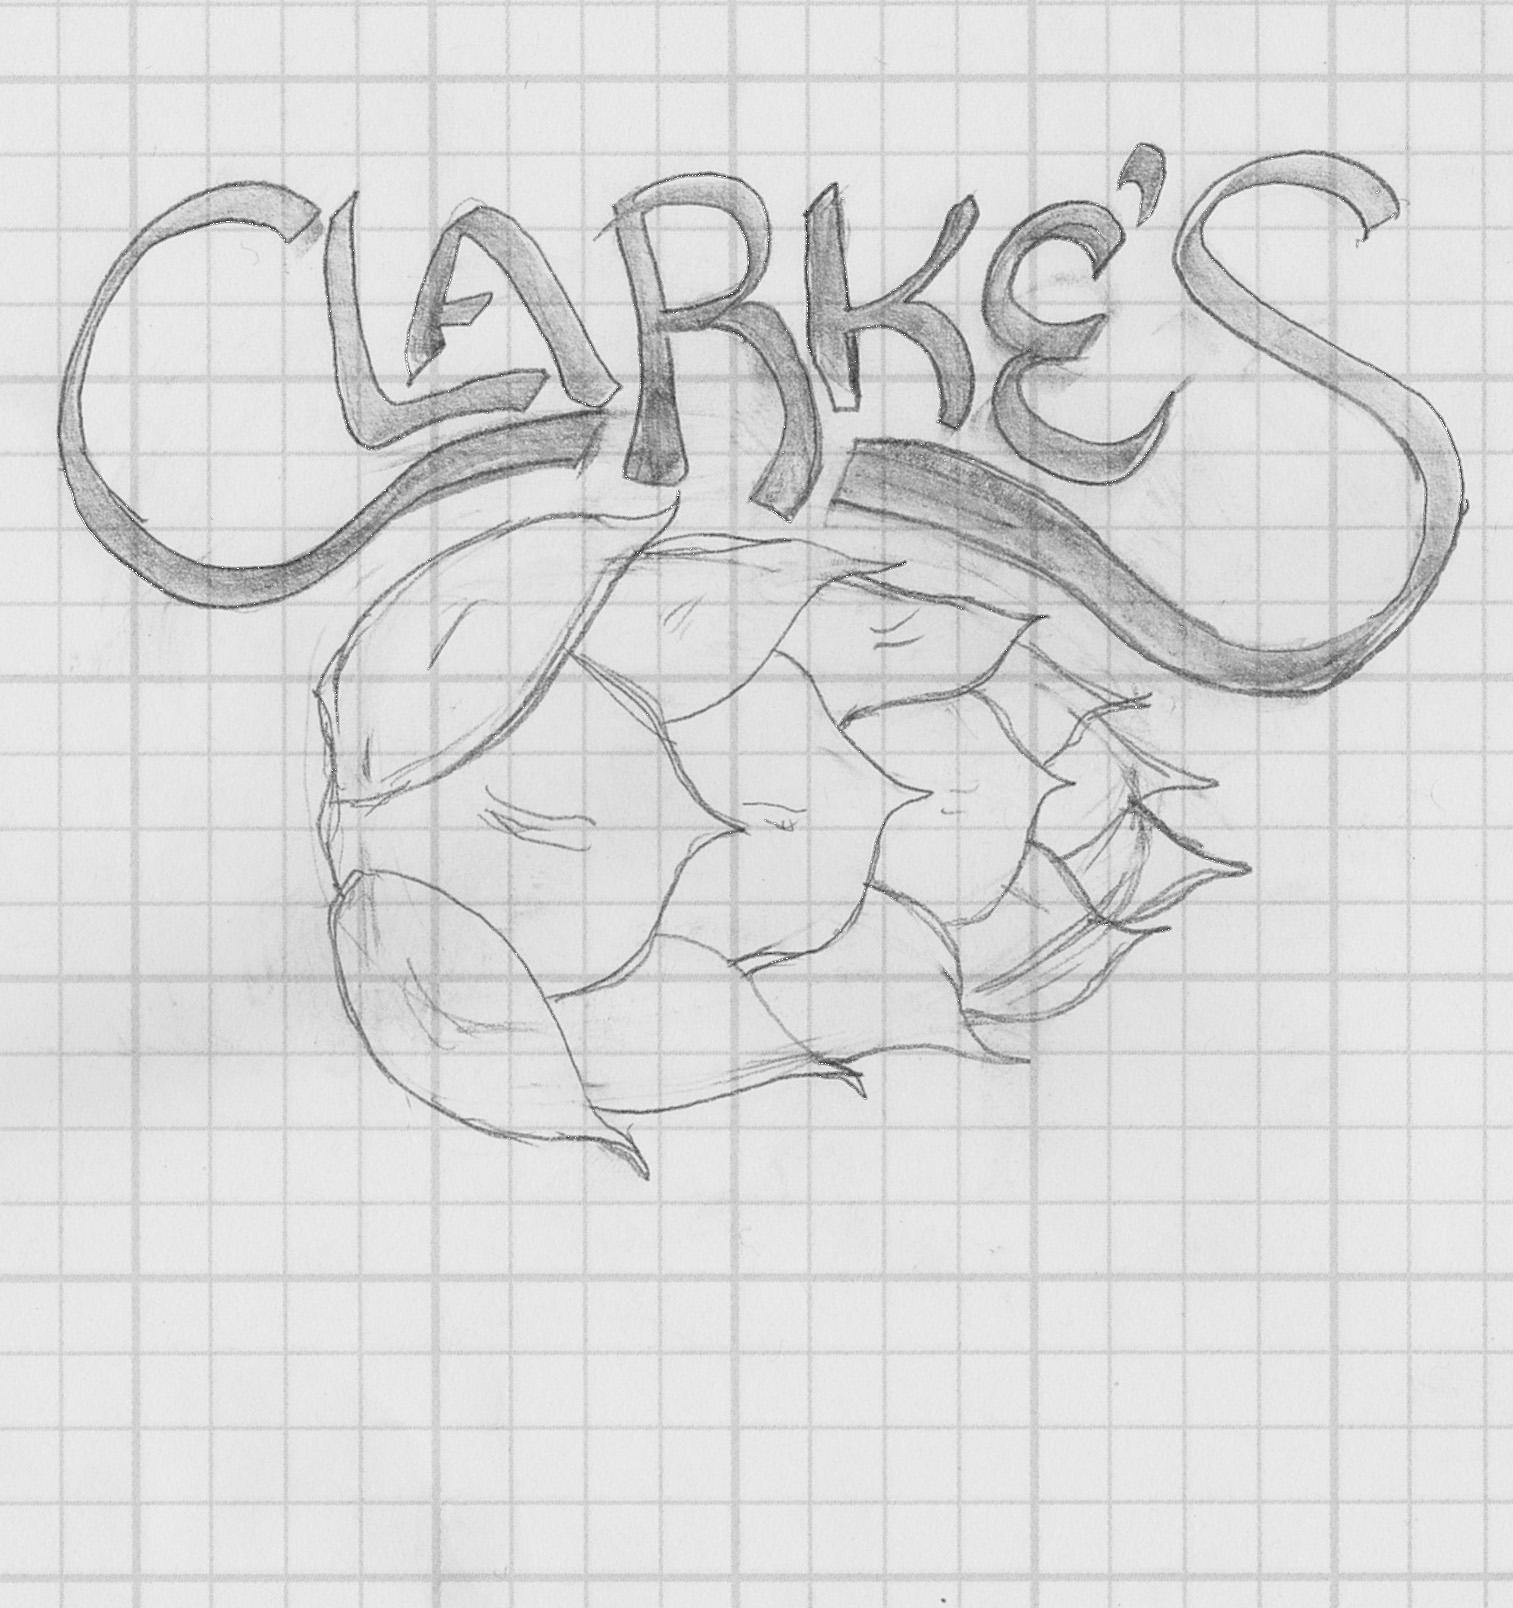 Clarke's Beer - image 3 - student project